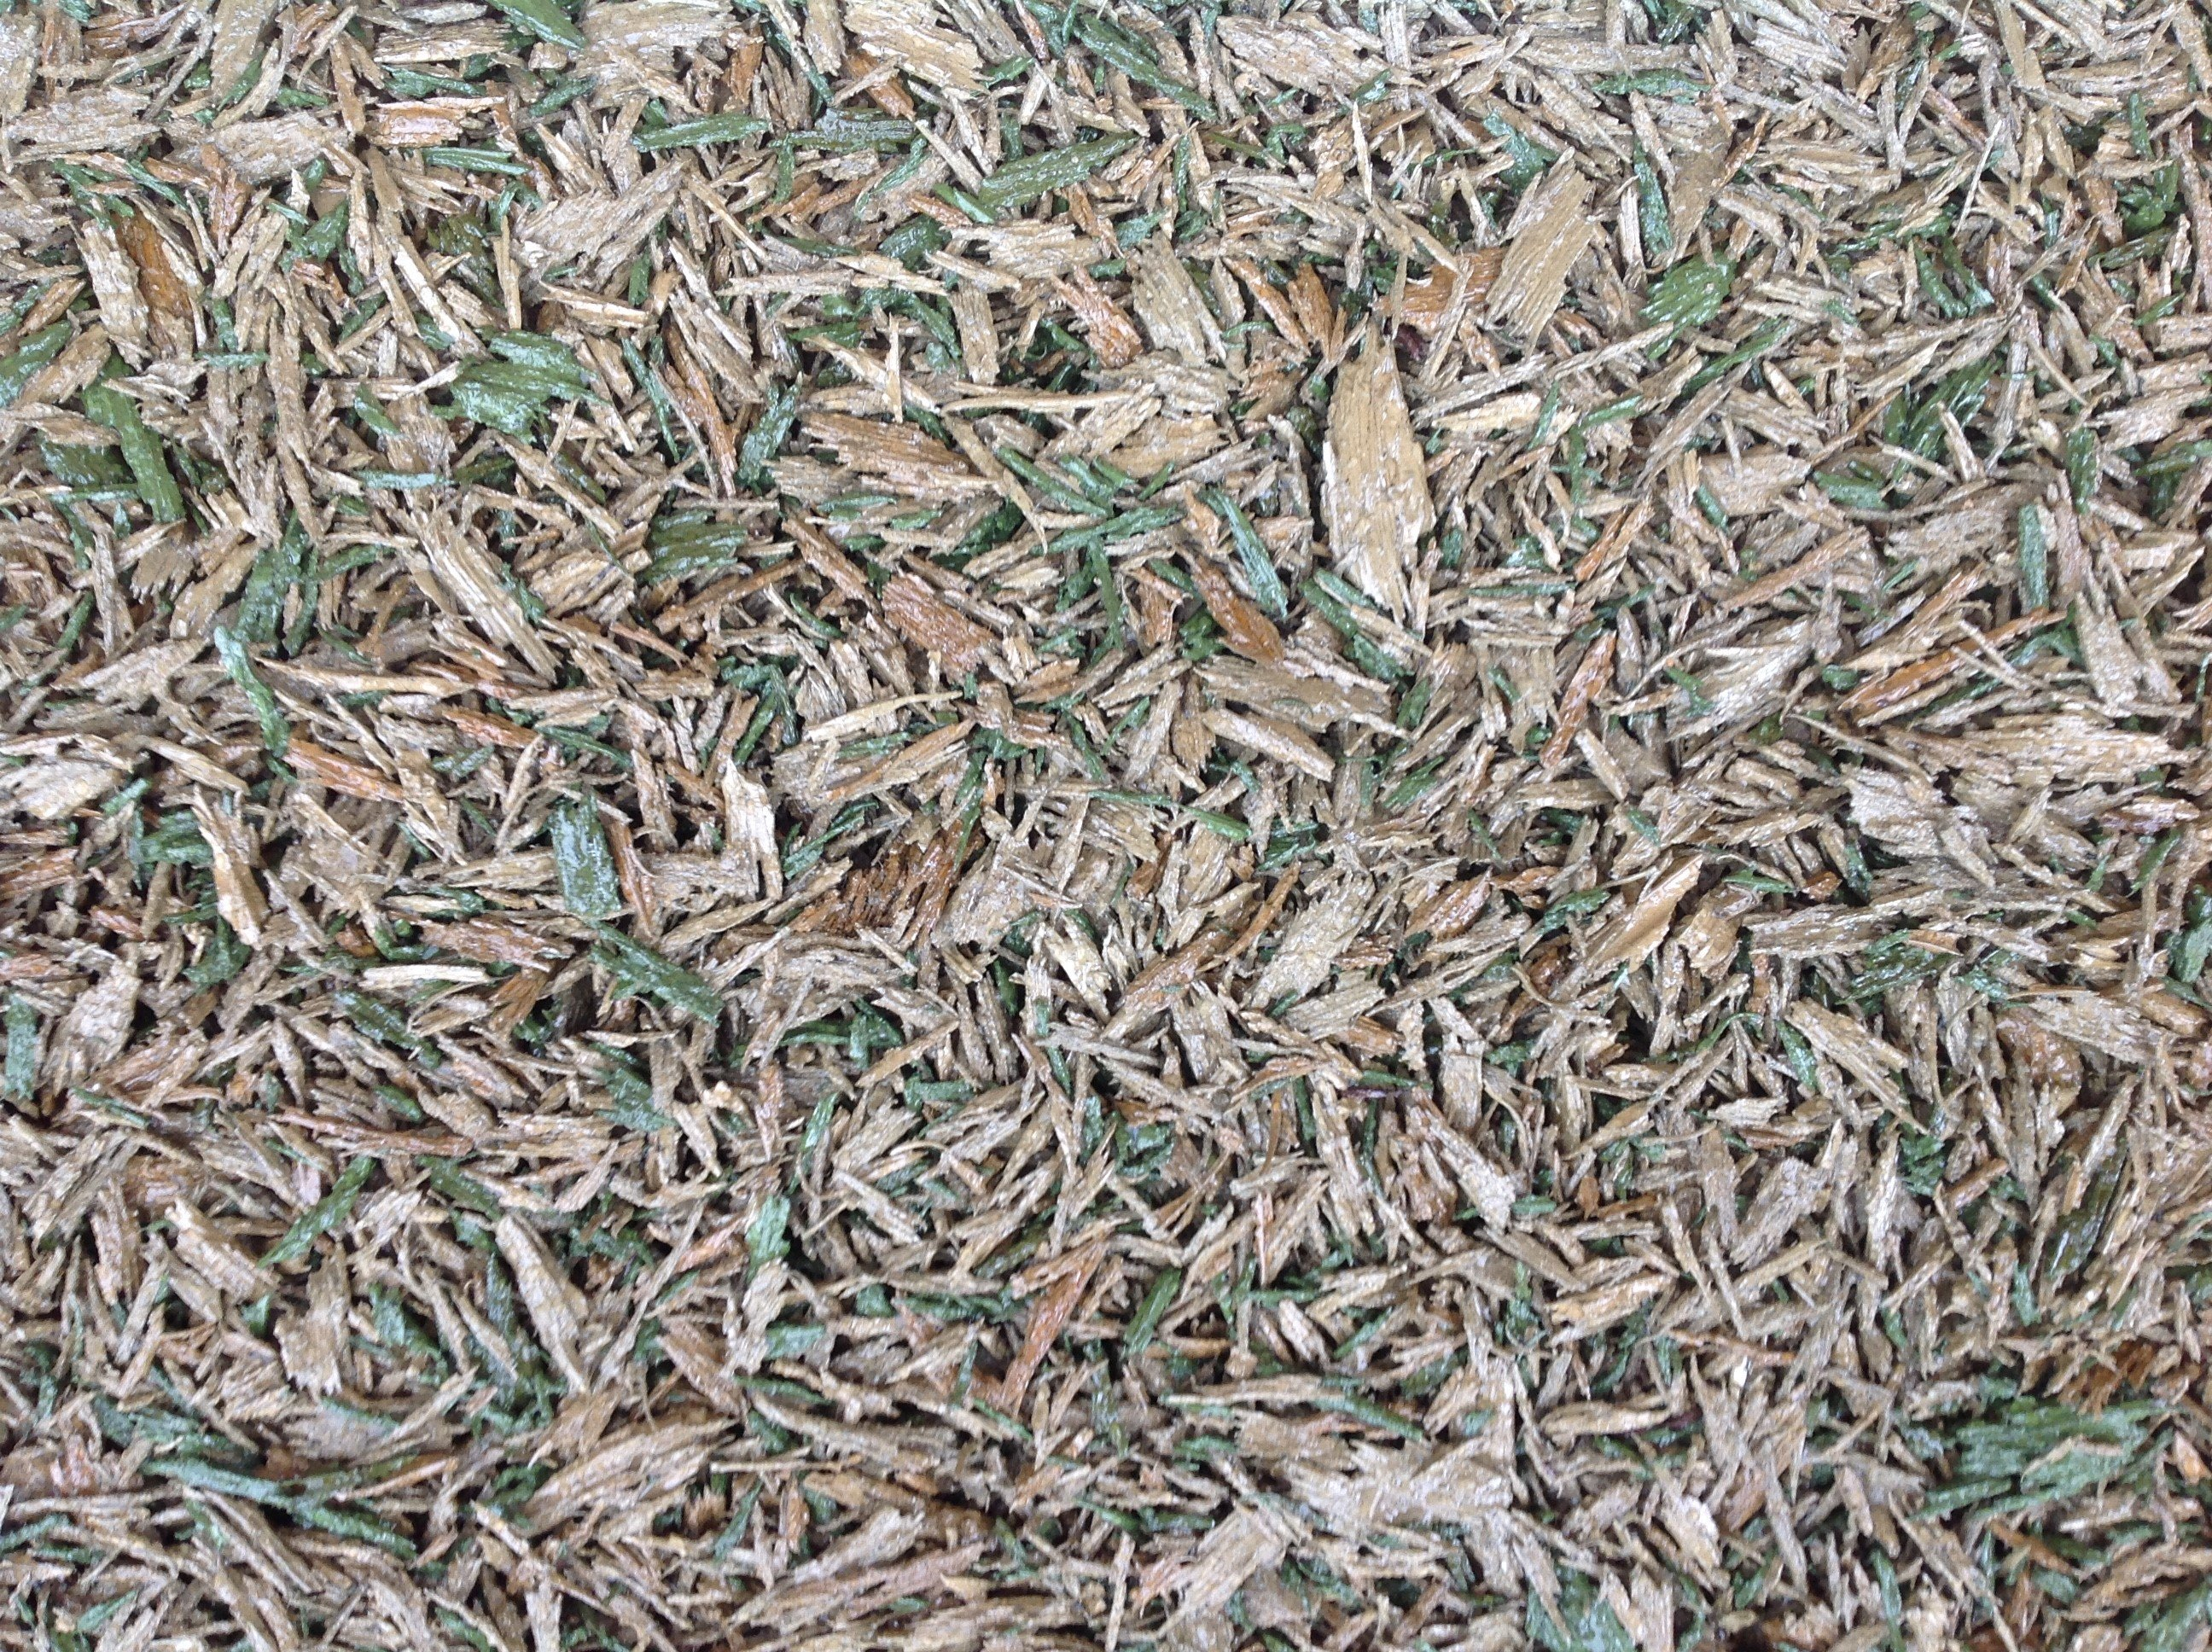 rubber mulch surface in natural greens and browns